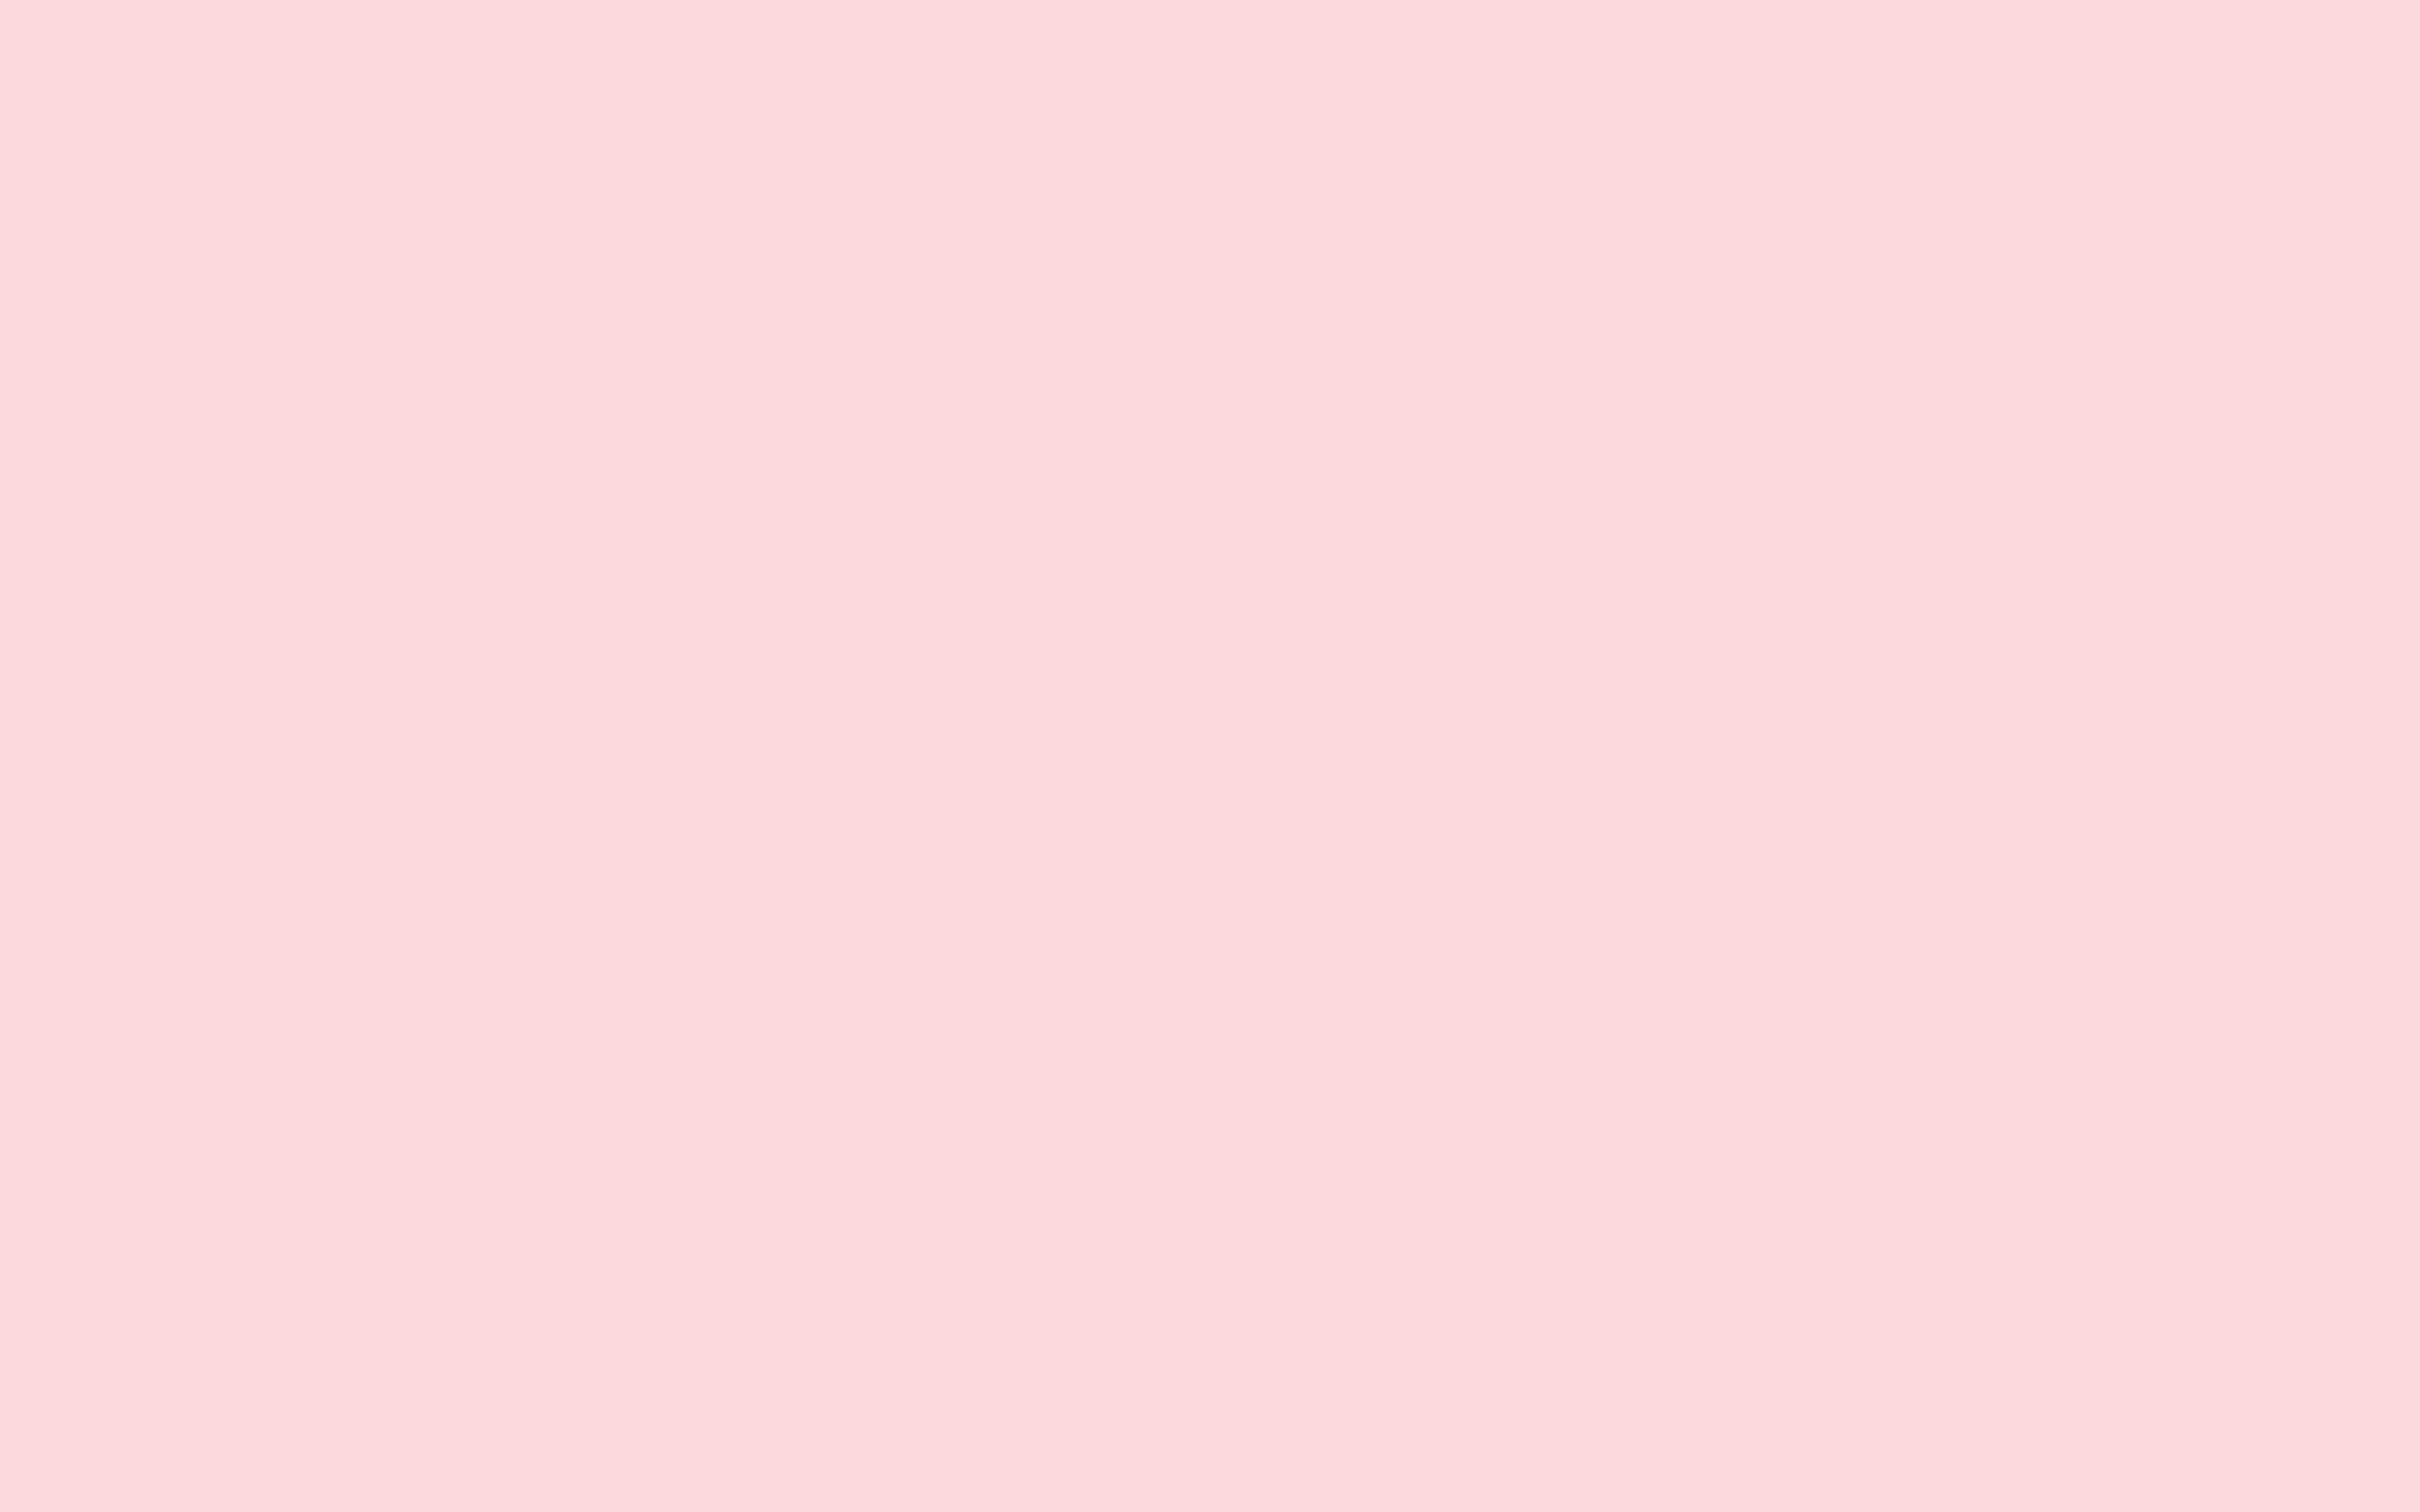 2560x1600 Pale Pink Solid Color Background